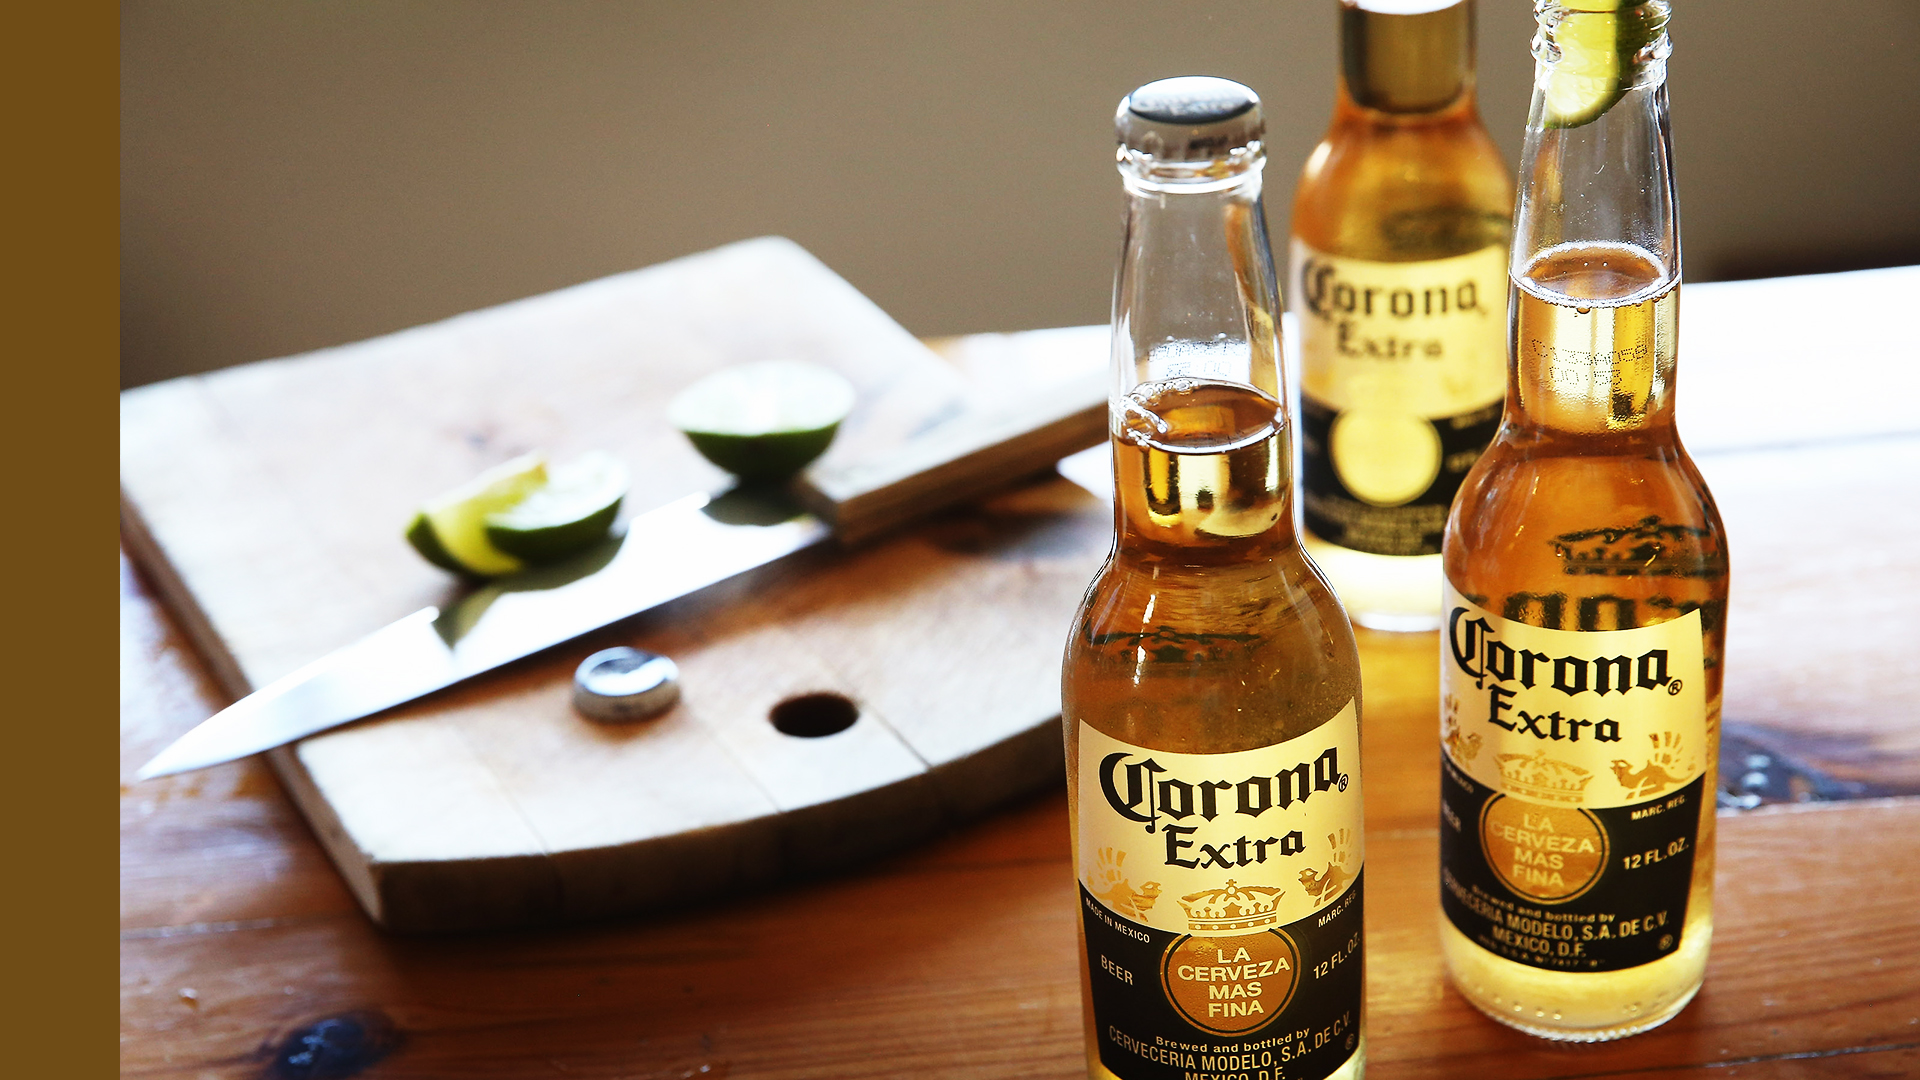 Corona Beer Price, Alcohol Content, What Is Corona Extra & Premier? photo